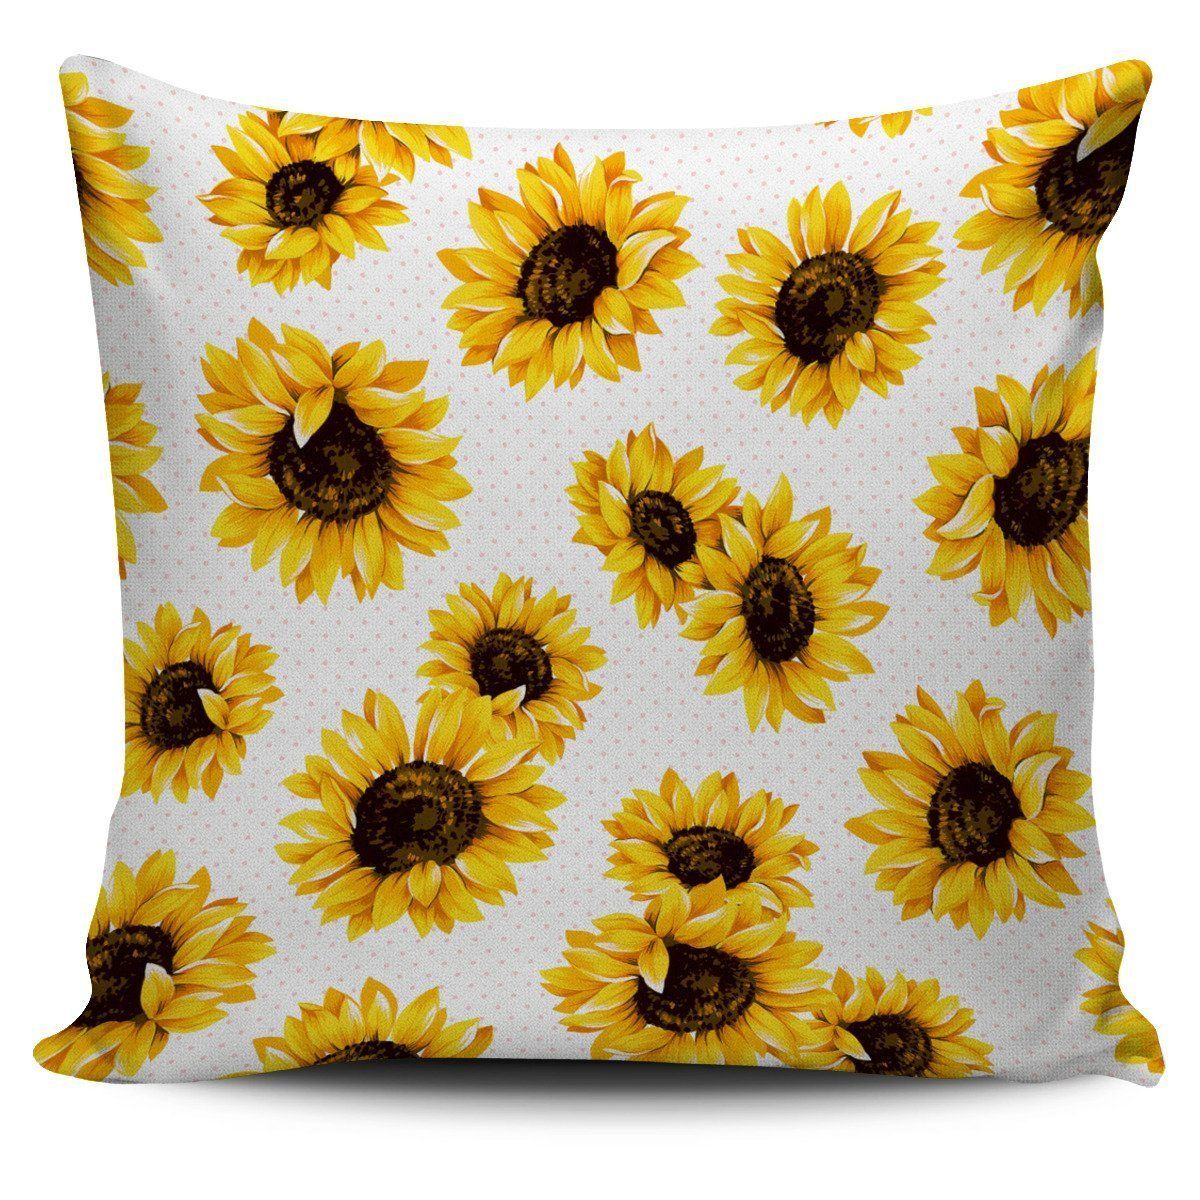 Sunflower Polka Dot Pattern Print Pillow Cover